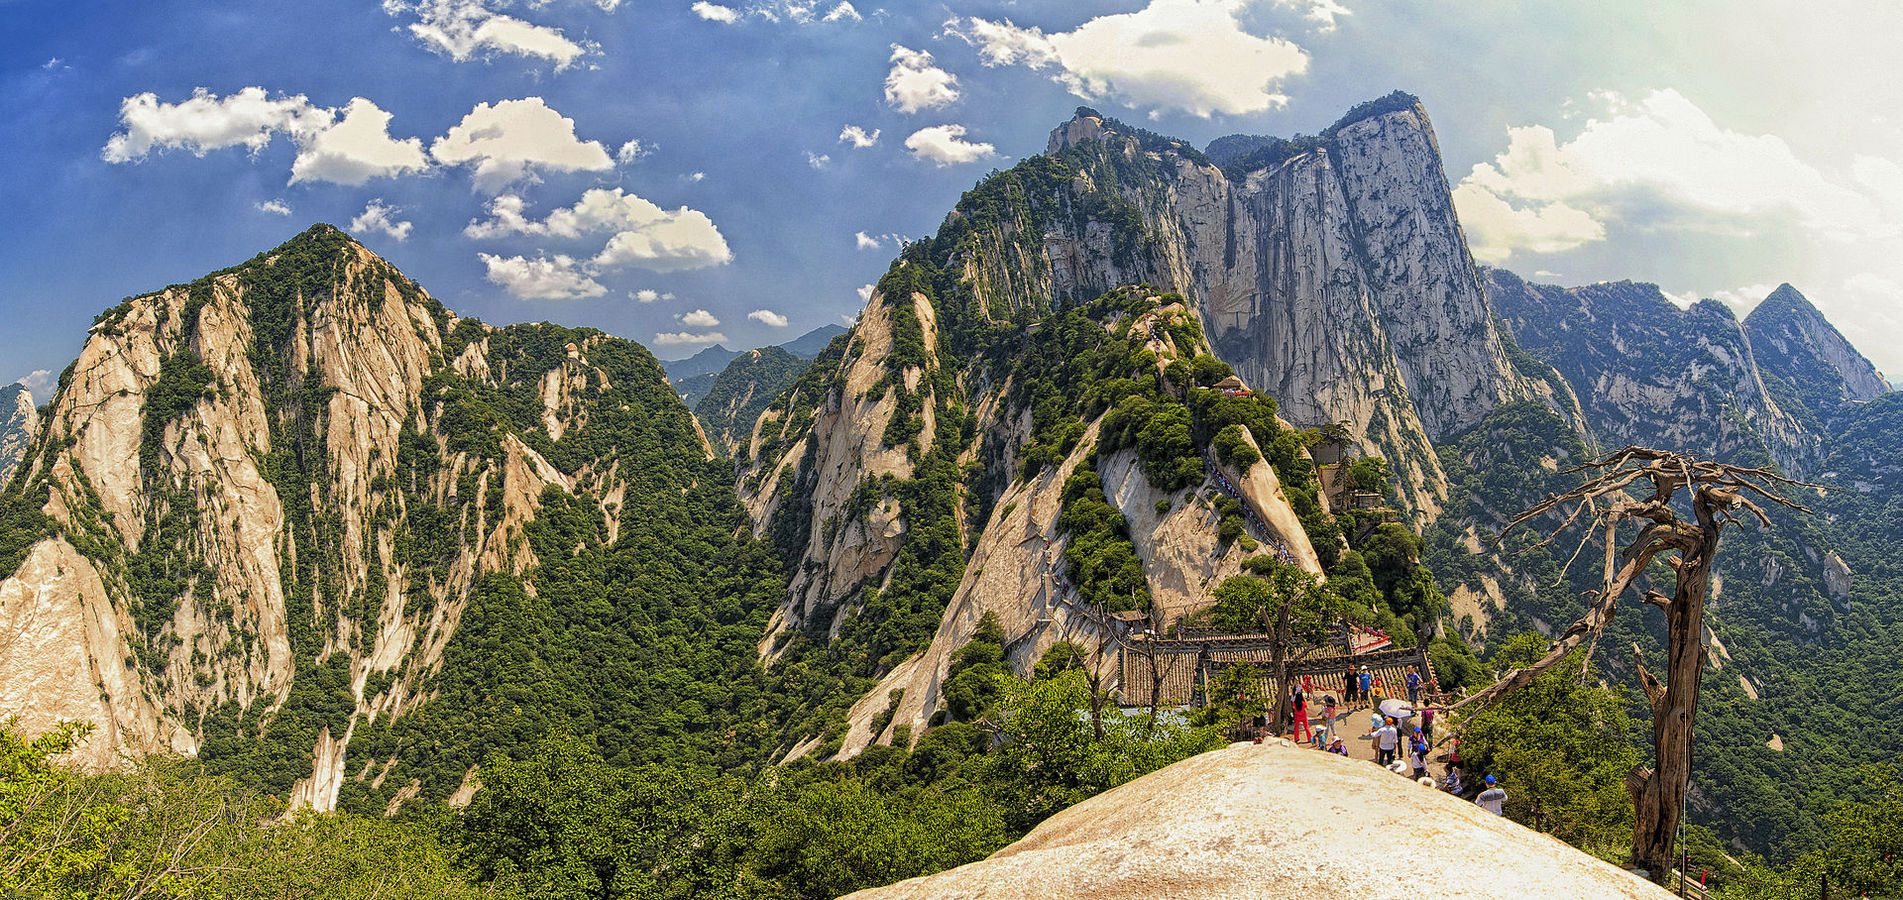 1920px-1_mount_hua_shan_china_2011.jpg